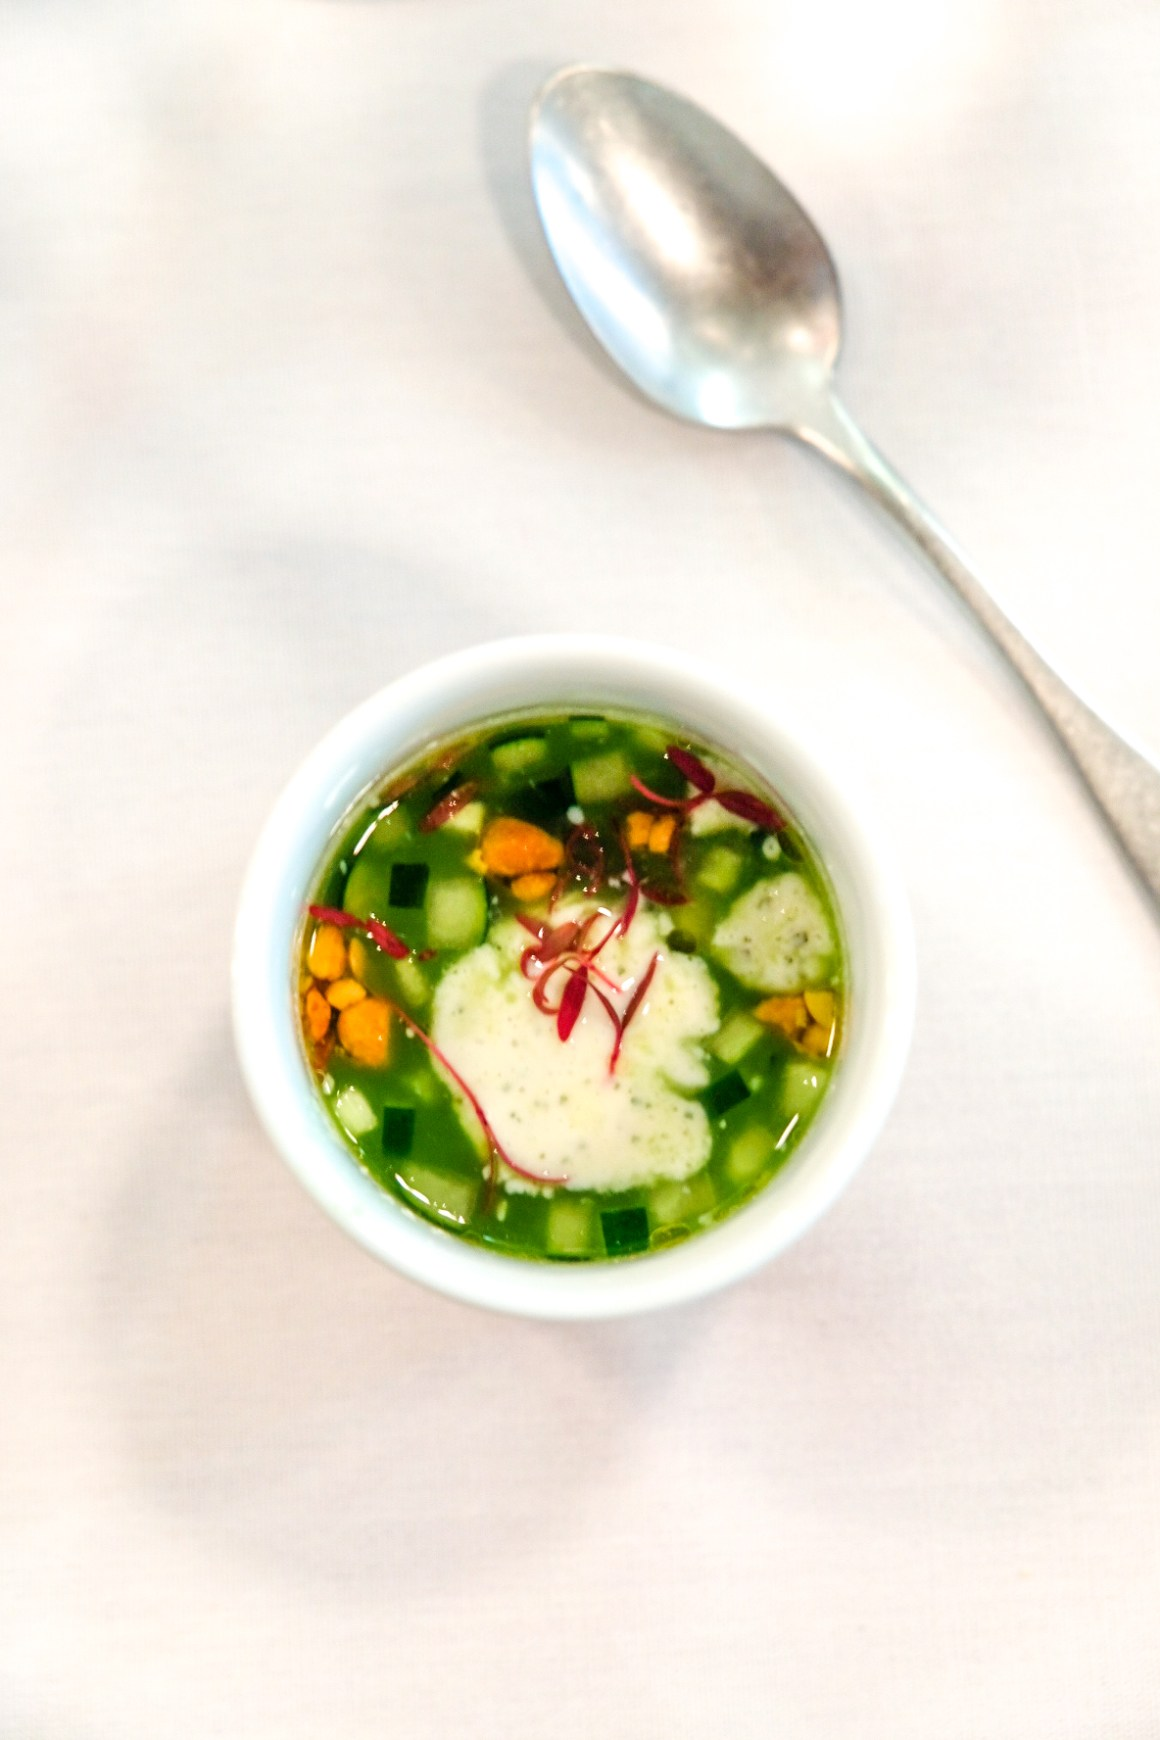 Restaurant Jag Celebrate Earth Day With Spring Produce - Verveine, Cucumber Water, Tofu Creme